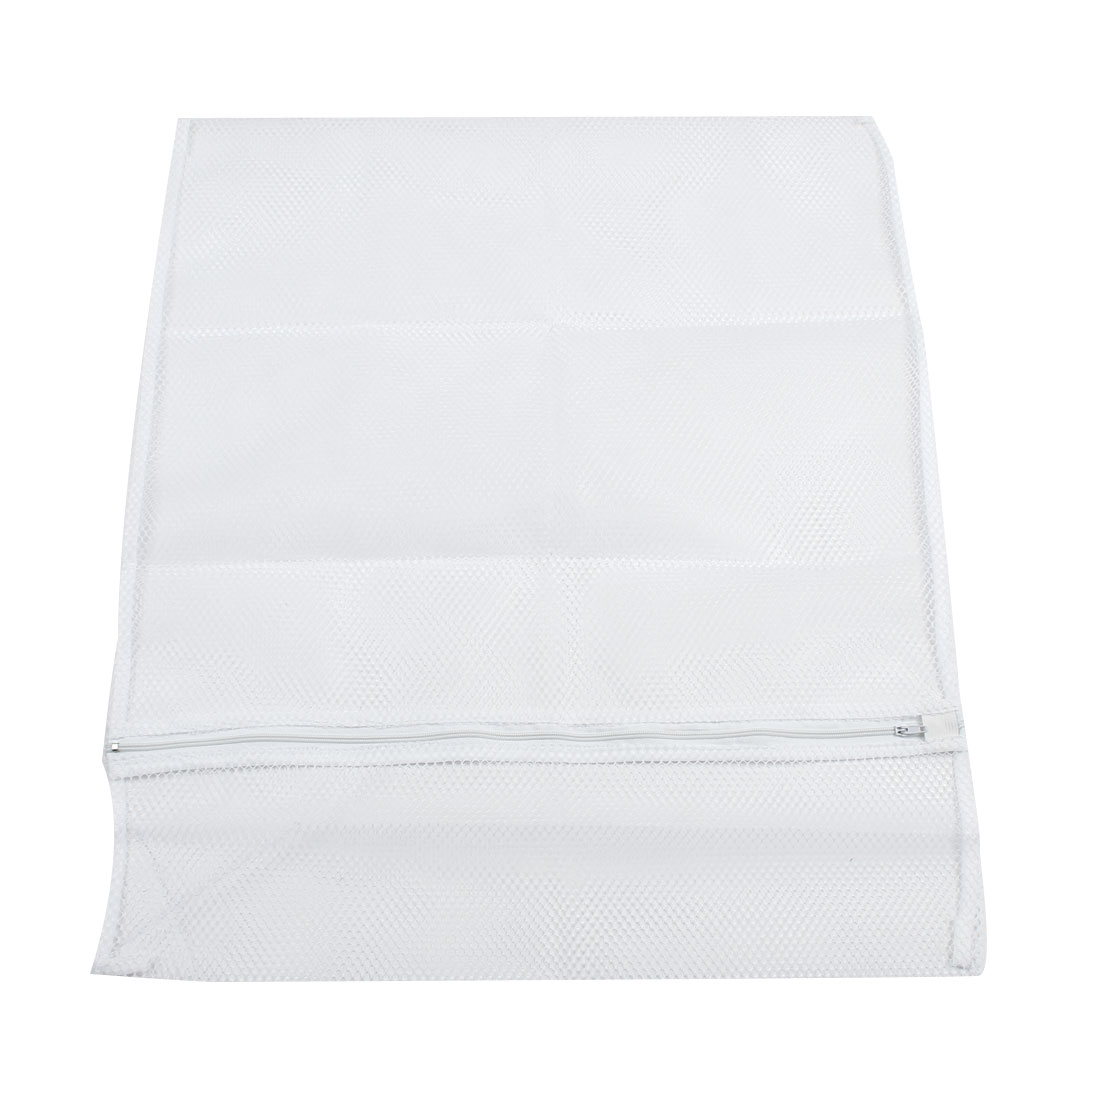 Washing Machine White Nylon Mesh Clothes Socks Washing Bag 57cm x 47cm